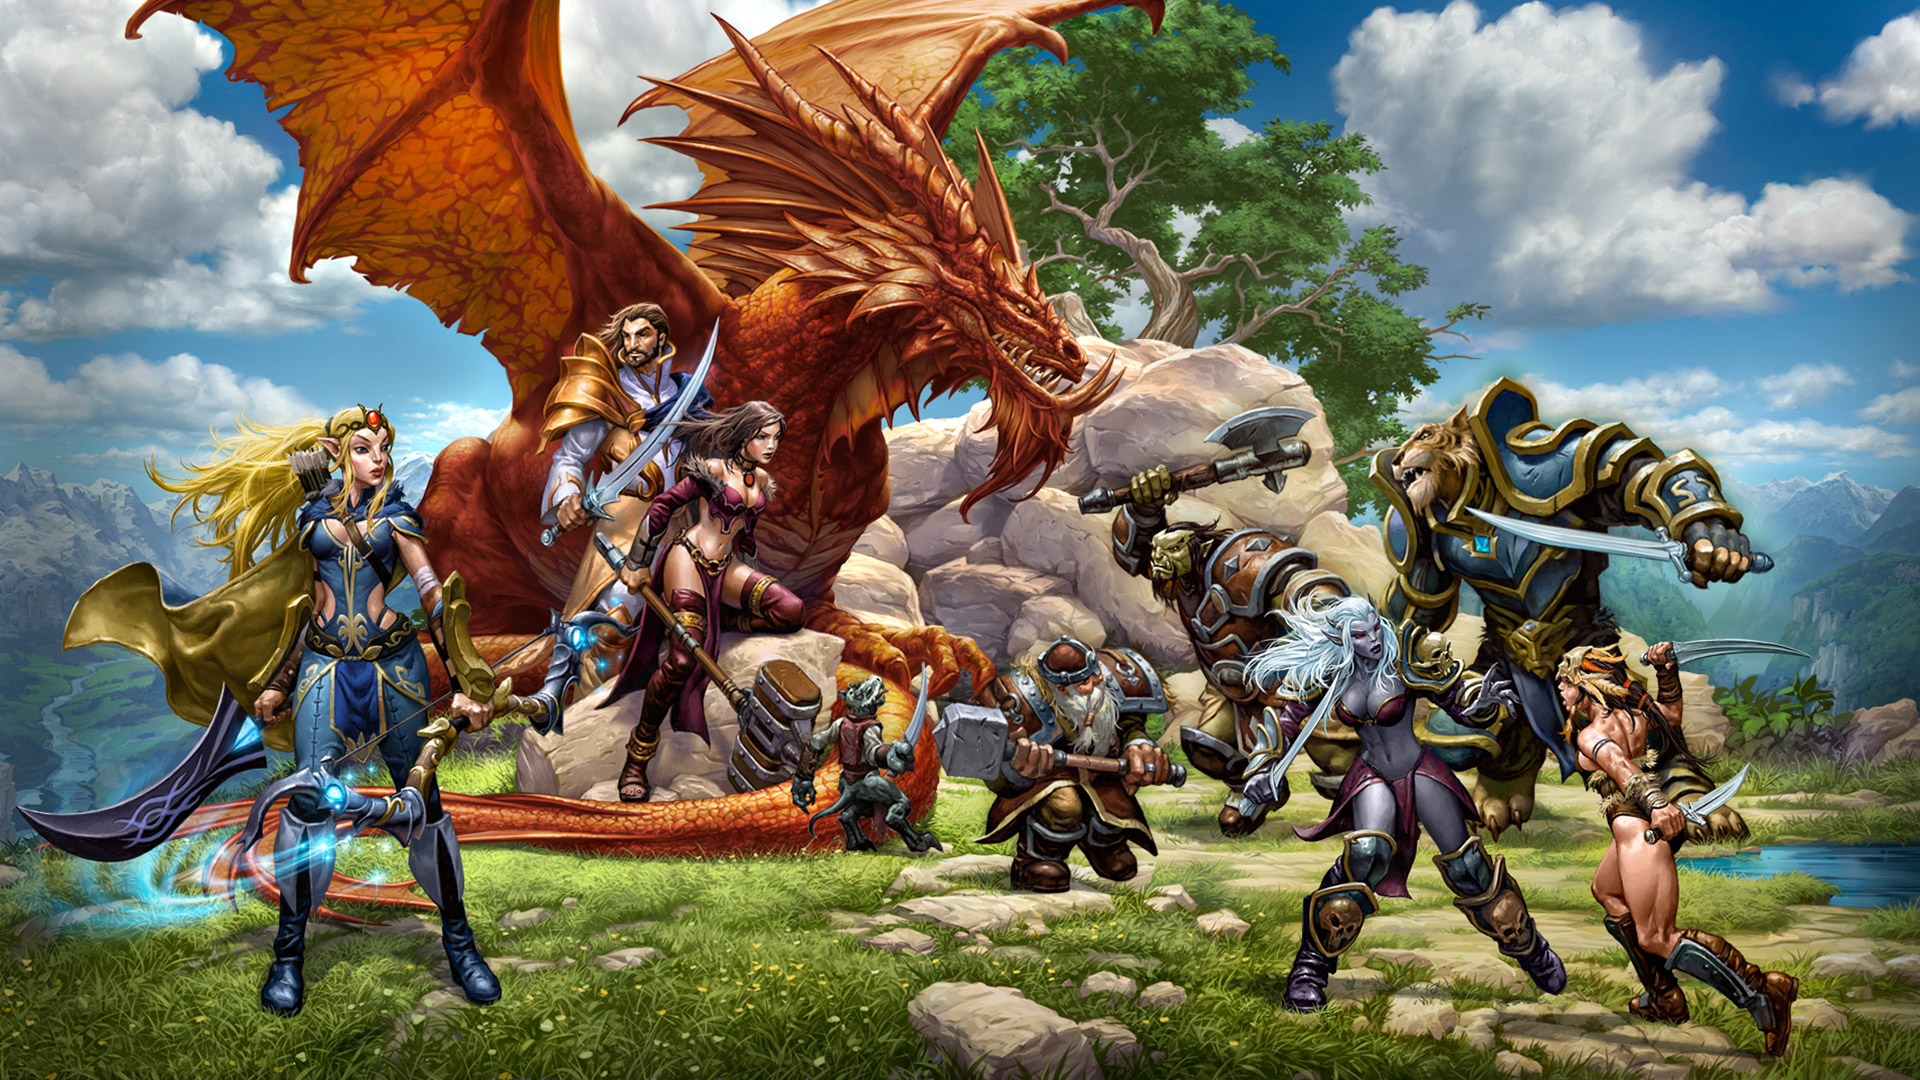 Free Everquest Next Wallpaper in 1920x1080